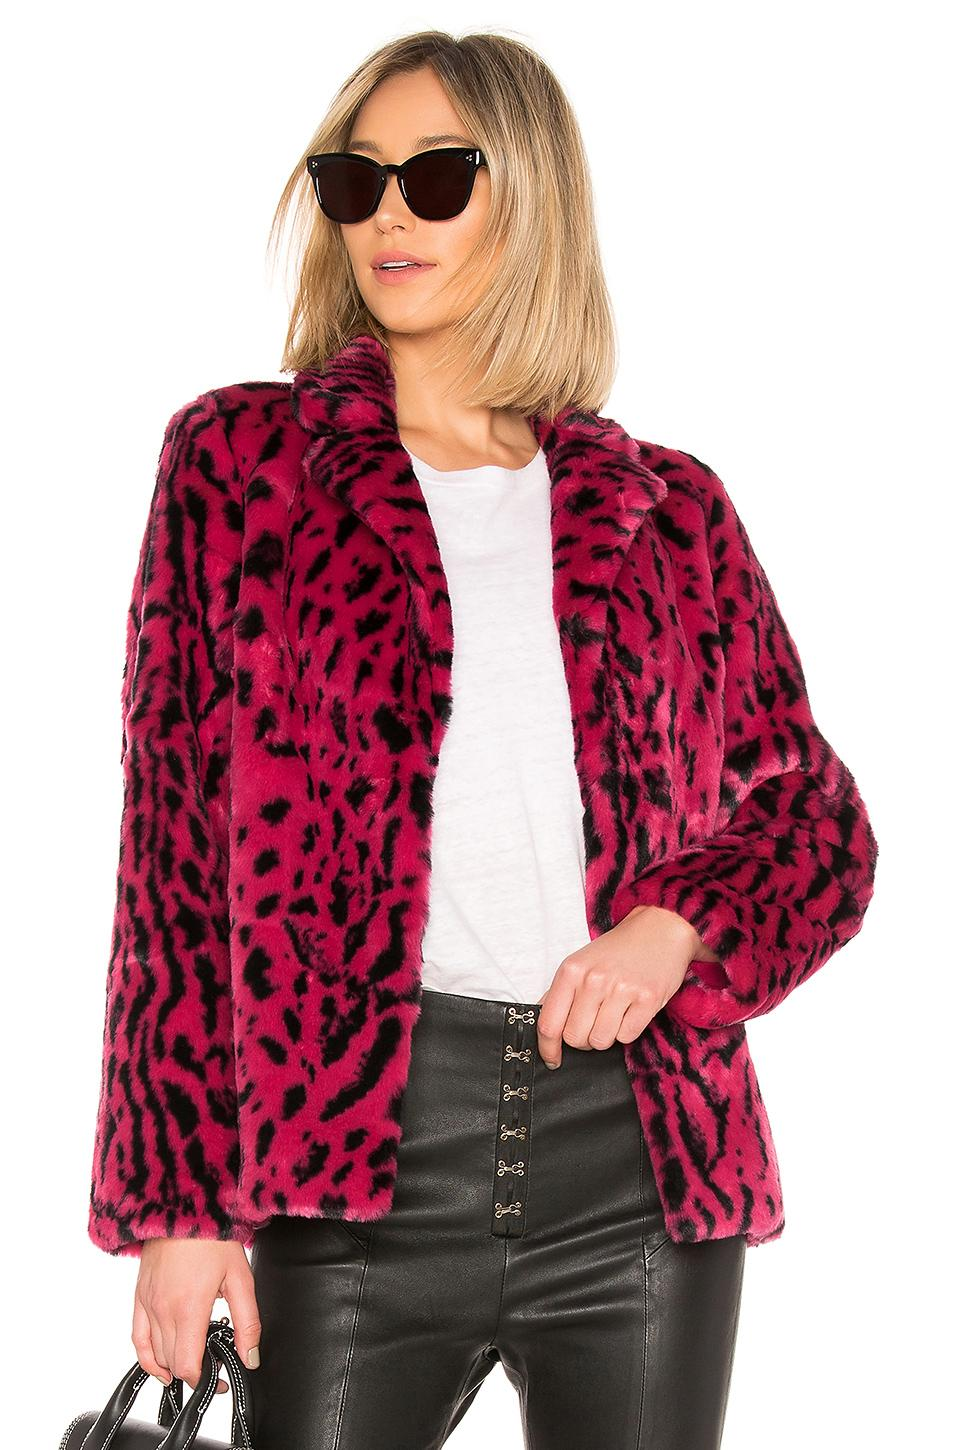 89d3d6a20ff6 House Of Harlow 1960 X Revolve Virginia Faux Fur Coat In Fuchsia ...